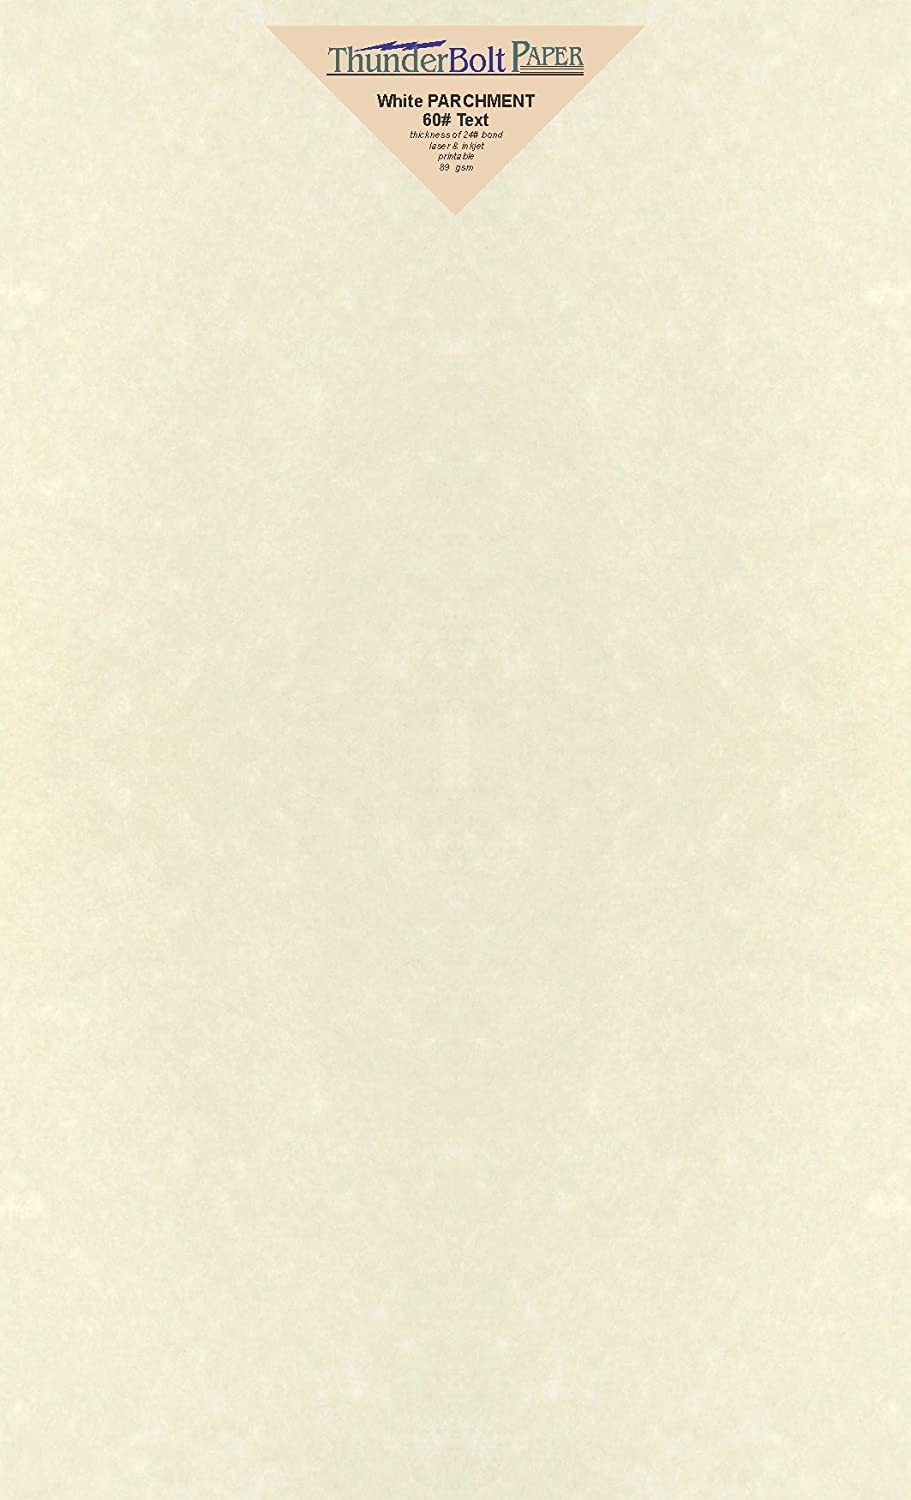 50 Soft White Parchment 60lb Text Weight Paper - 8.5